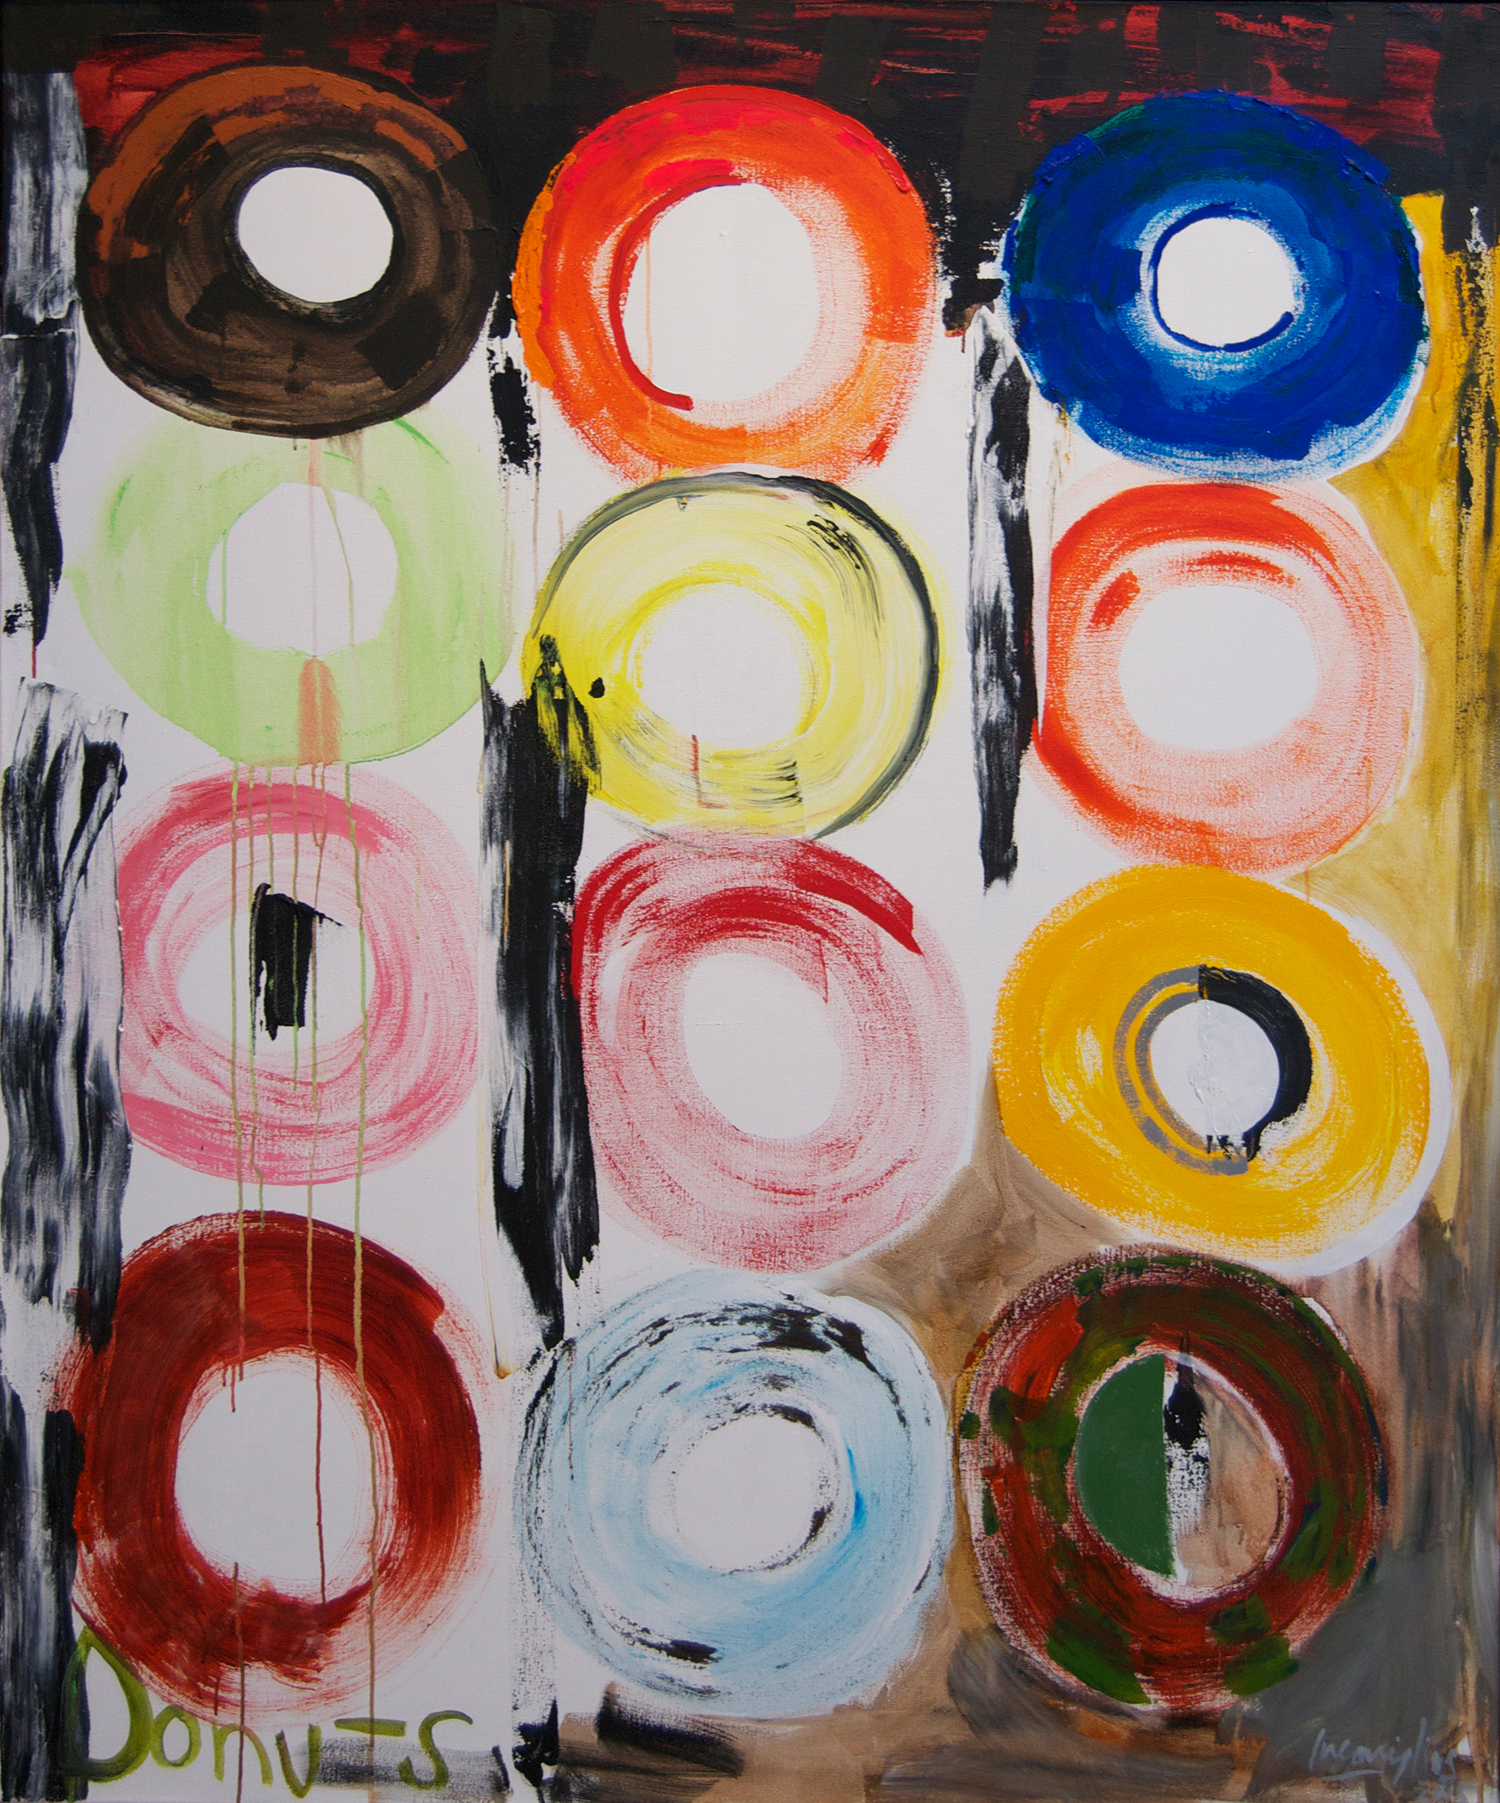 From the Donut Series,  2015 Acrylic on canvas 70 x 62 inches